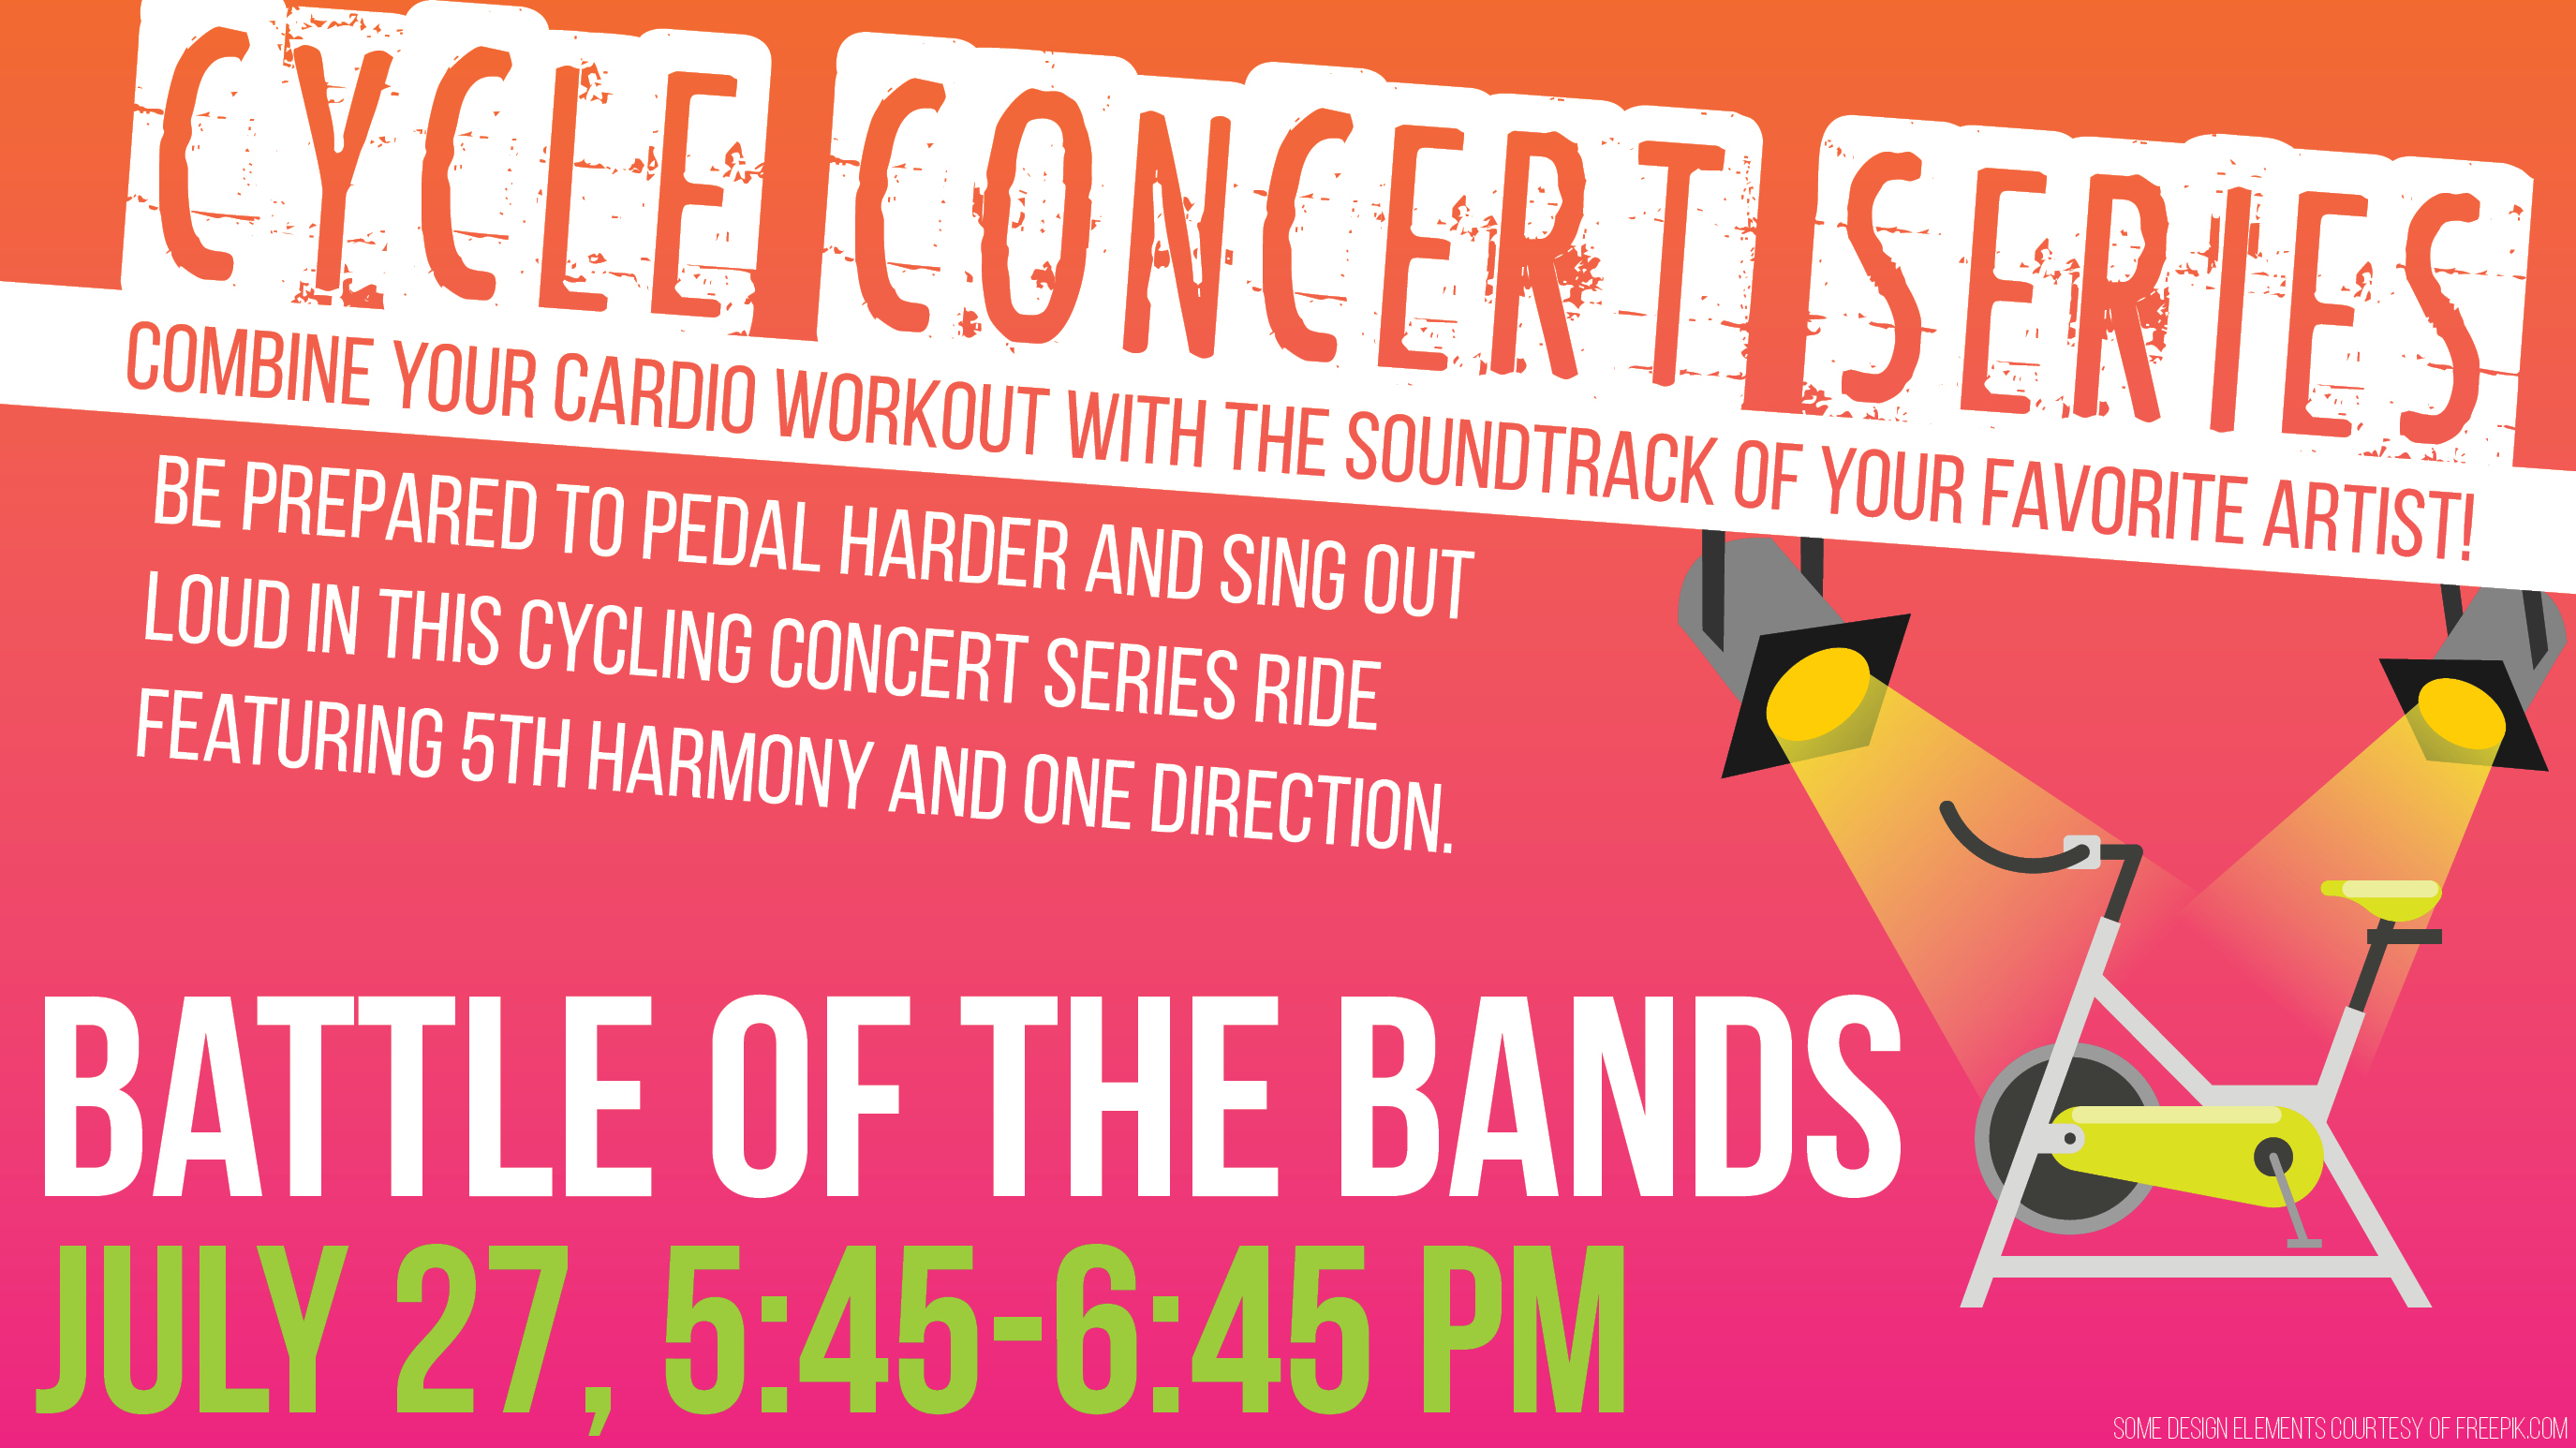 Cycle Concert Series: Battle of the Bands